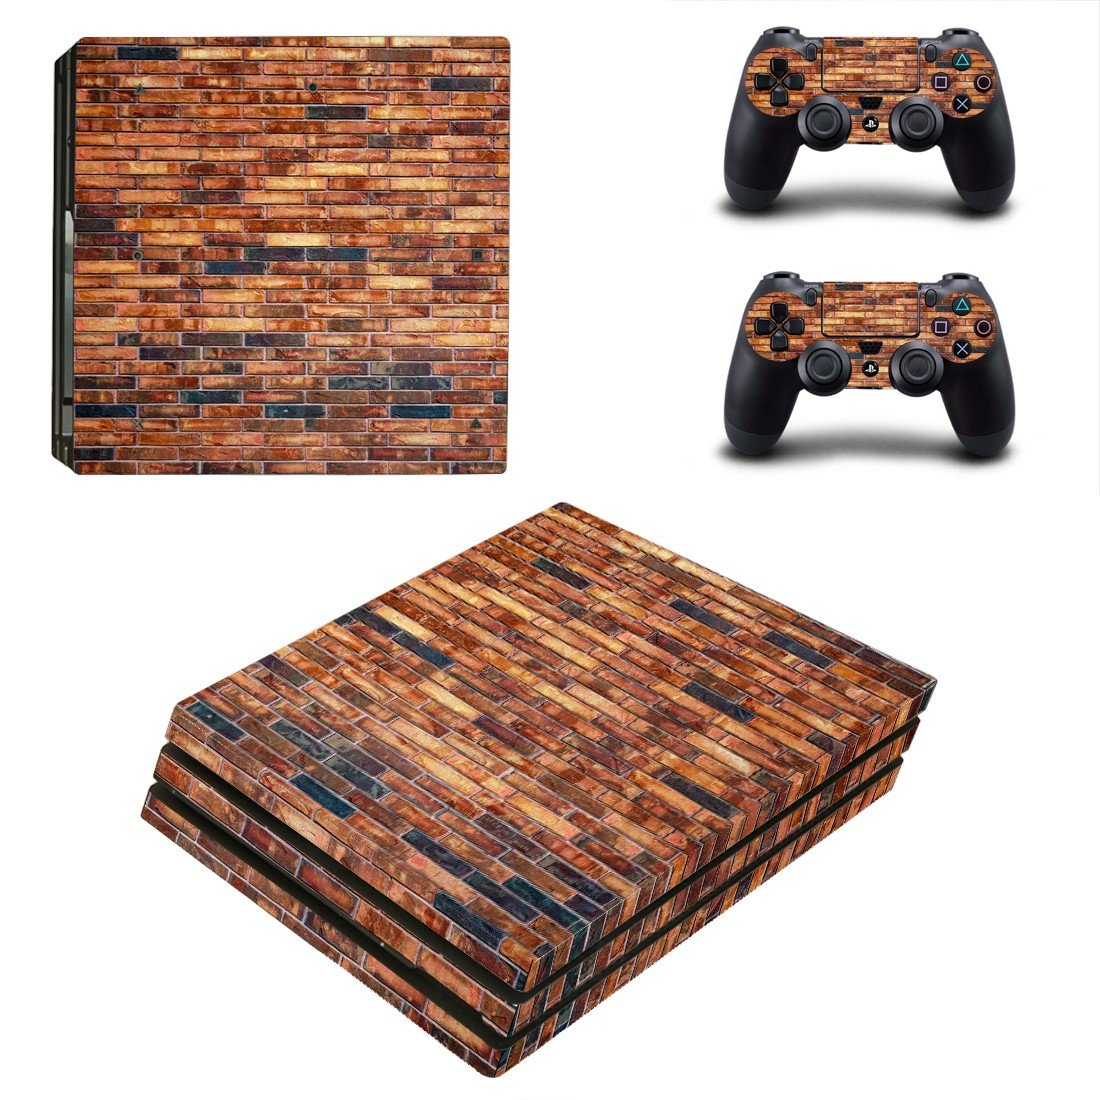 Rusted Brick wall ps4 pro skin decal for console and controllers